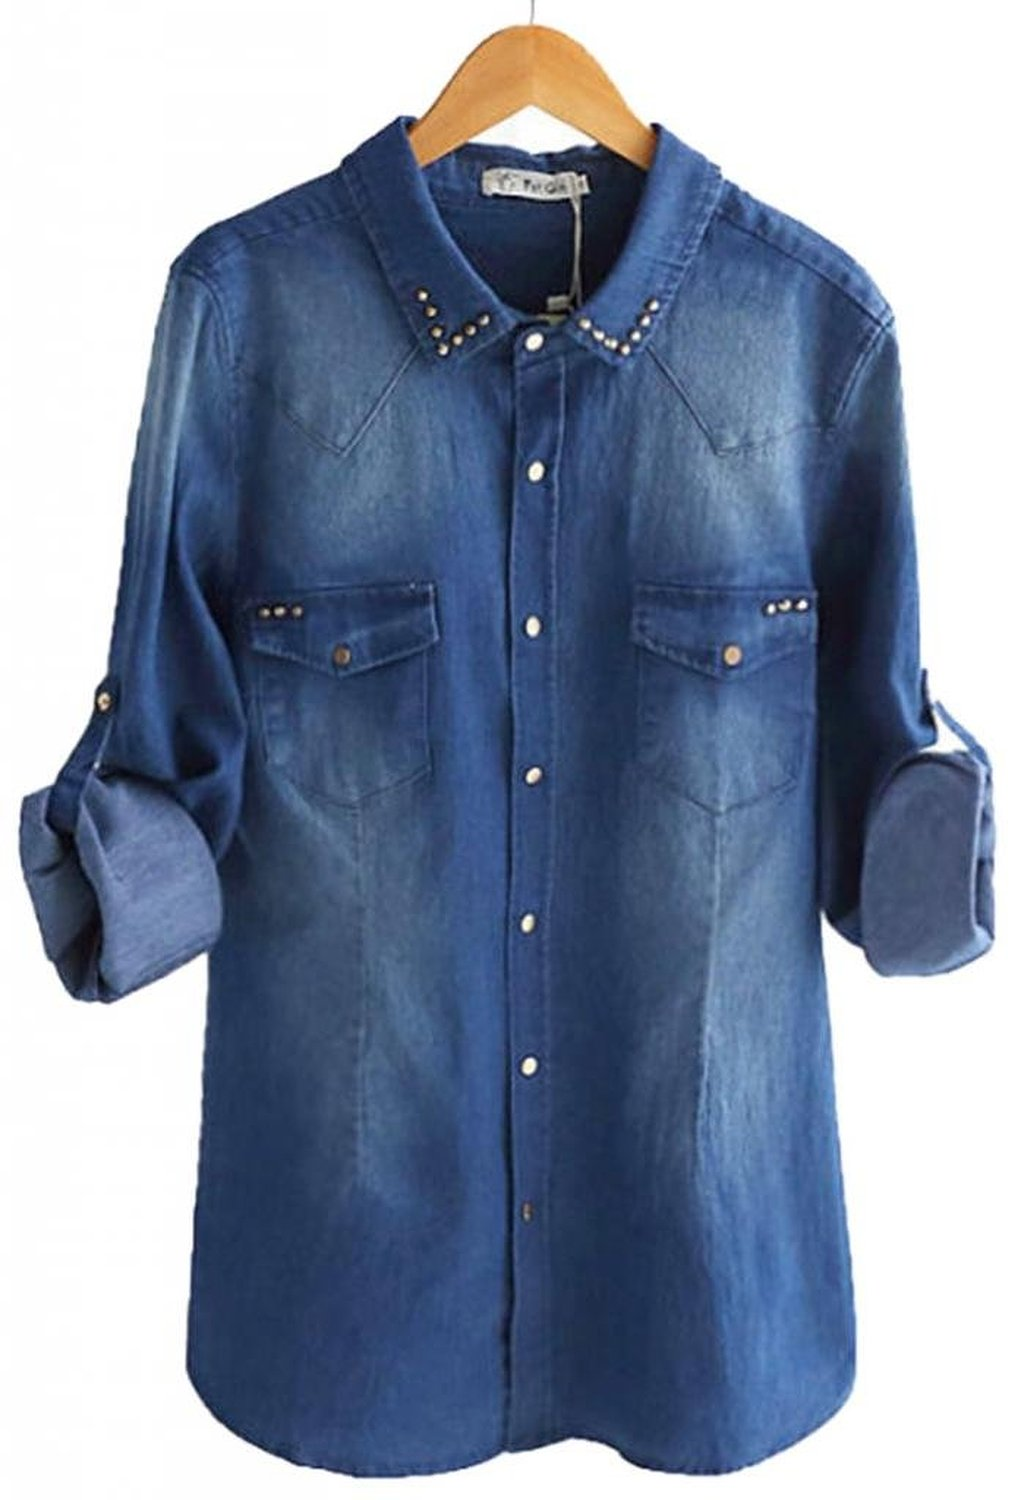 Women's washed rivet denim blouse plus size at amazon women's clothing store: